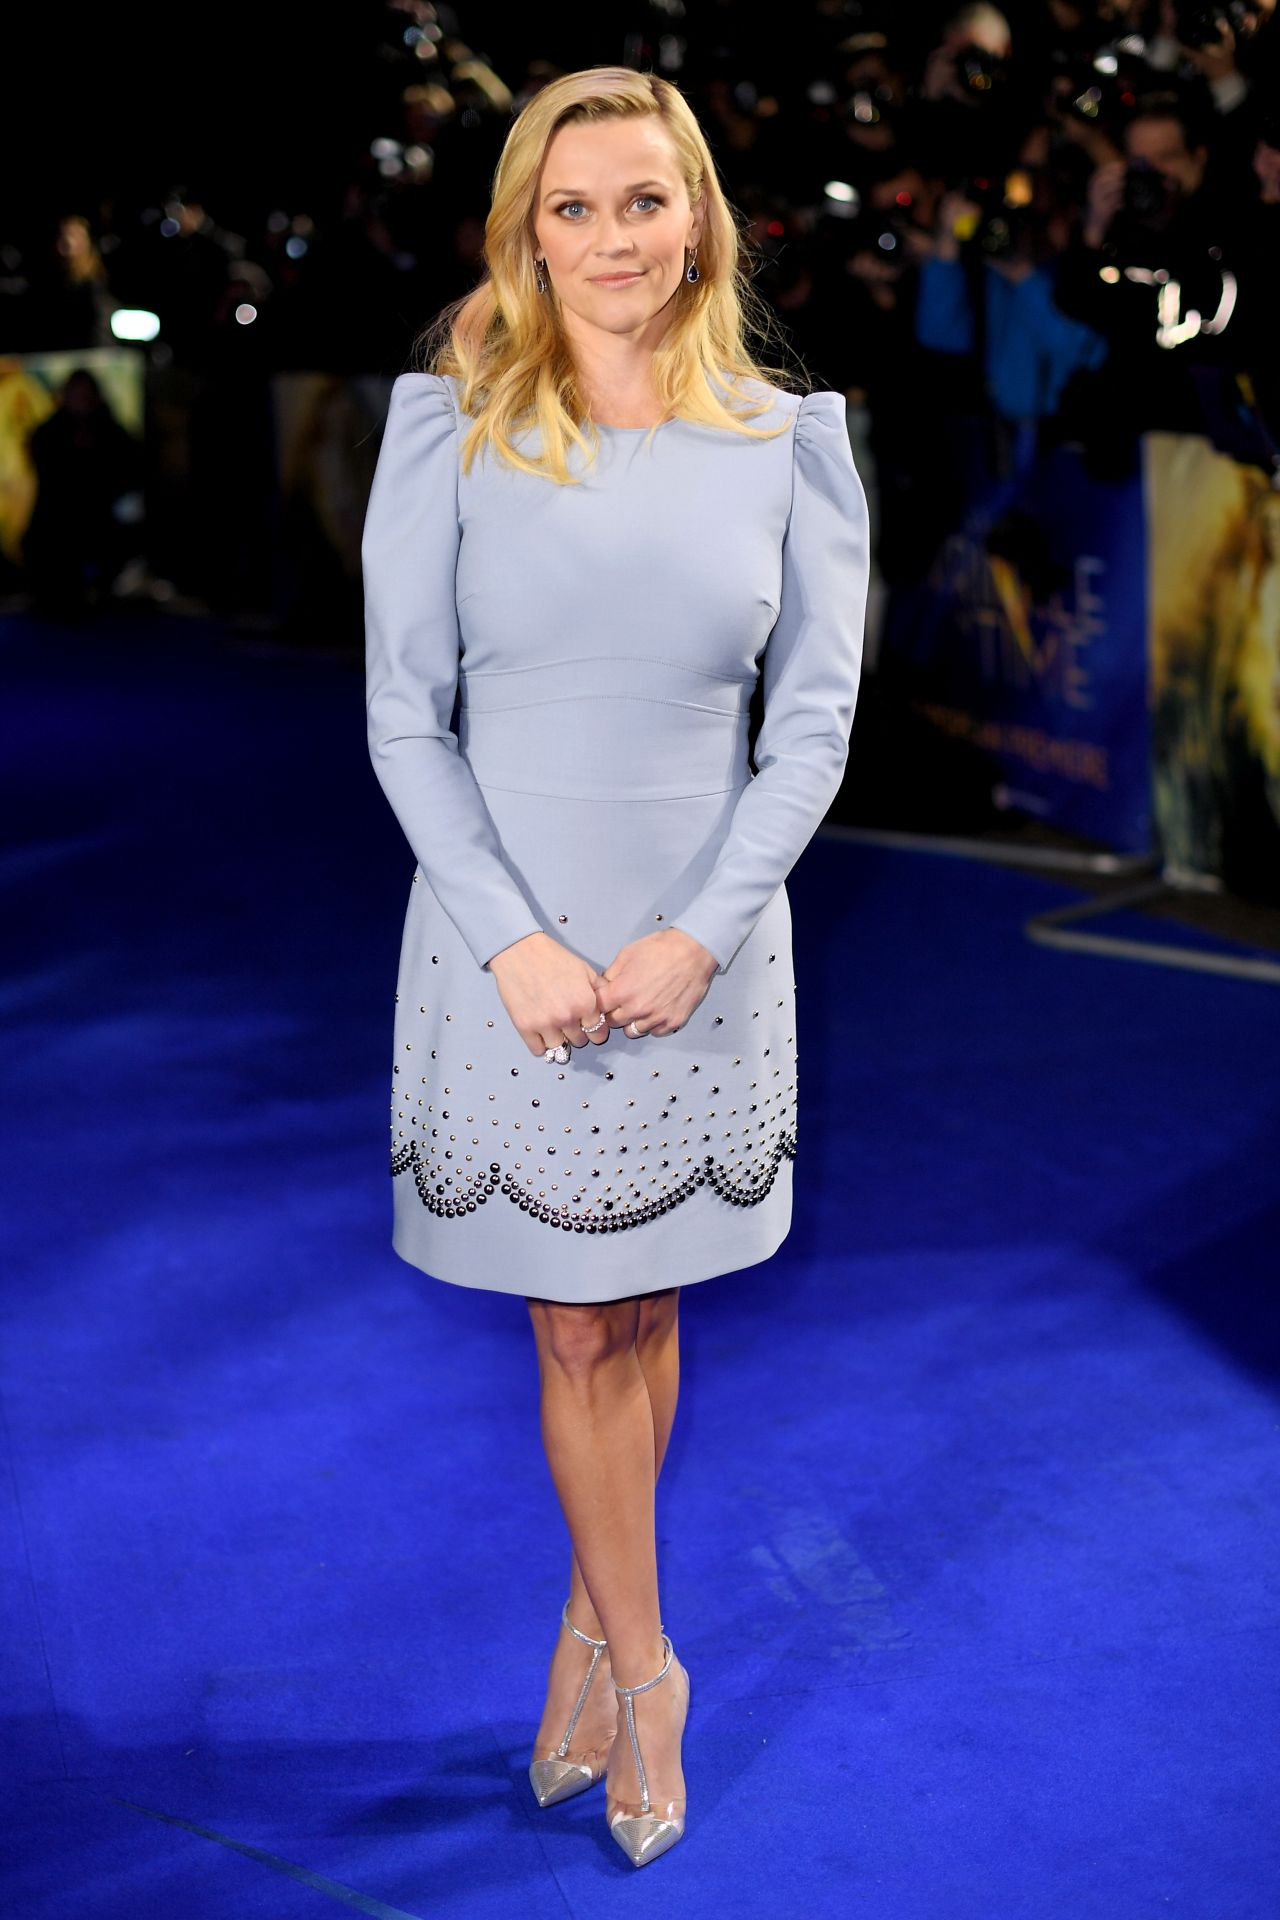 http://celebmafia.com/wp-content/uploads/2018/03/reese-witherspoon-a-wrinkle-in-time-premiere-in-london-9.jpg